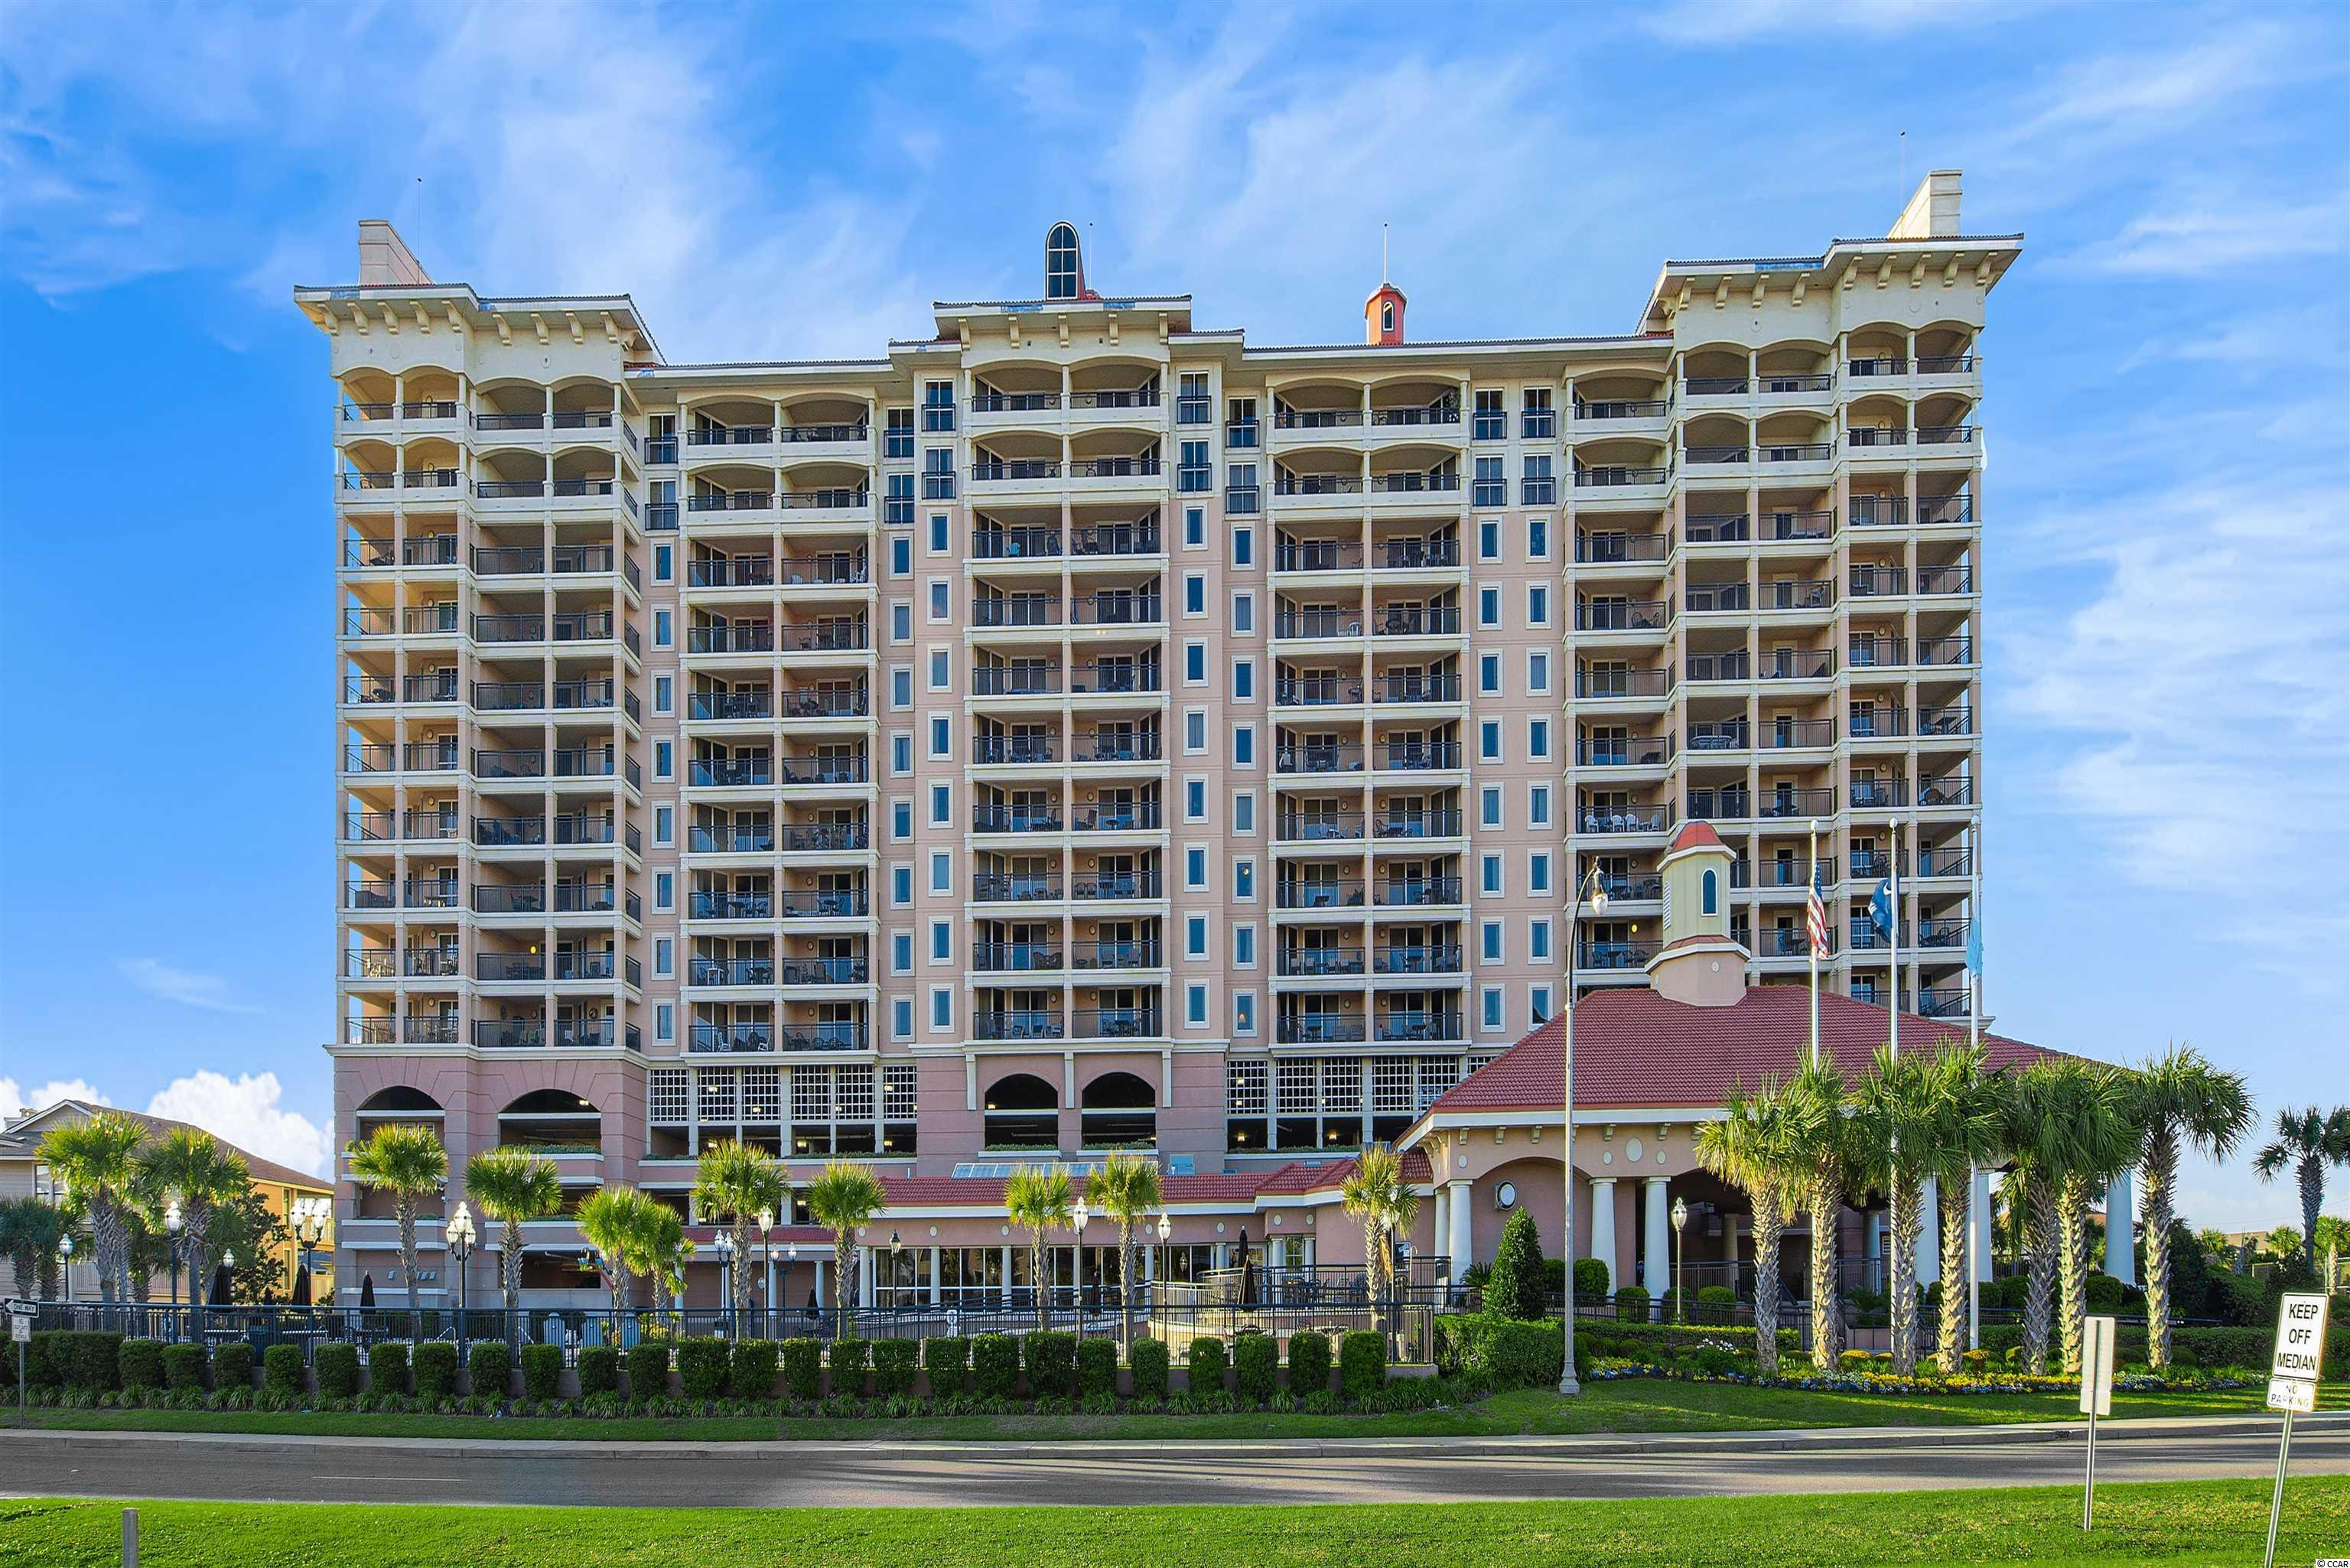 Absolutely Gorgeous Ocean View Condo! Fully furnished including smart TVs 3 bedroom, 2 baths with wonderfully open living space. Kitchen open to dining, and living areas with fabulous views of the ocean. Granite counters in kitchen and bathrooms with LVP in main living area. Enjoy all this and a private shaded balcony where you can listen to the ocean!  The Tilghman Offer so many amenities. Lazy River, Kiddiewater fall, hot tub, sauna indoor and outdoor pools, workout room, business center and café. This place really has it all!!